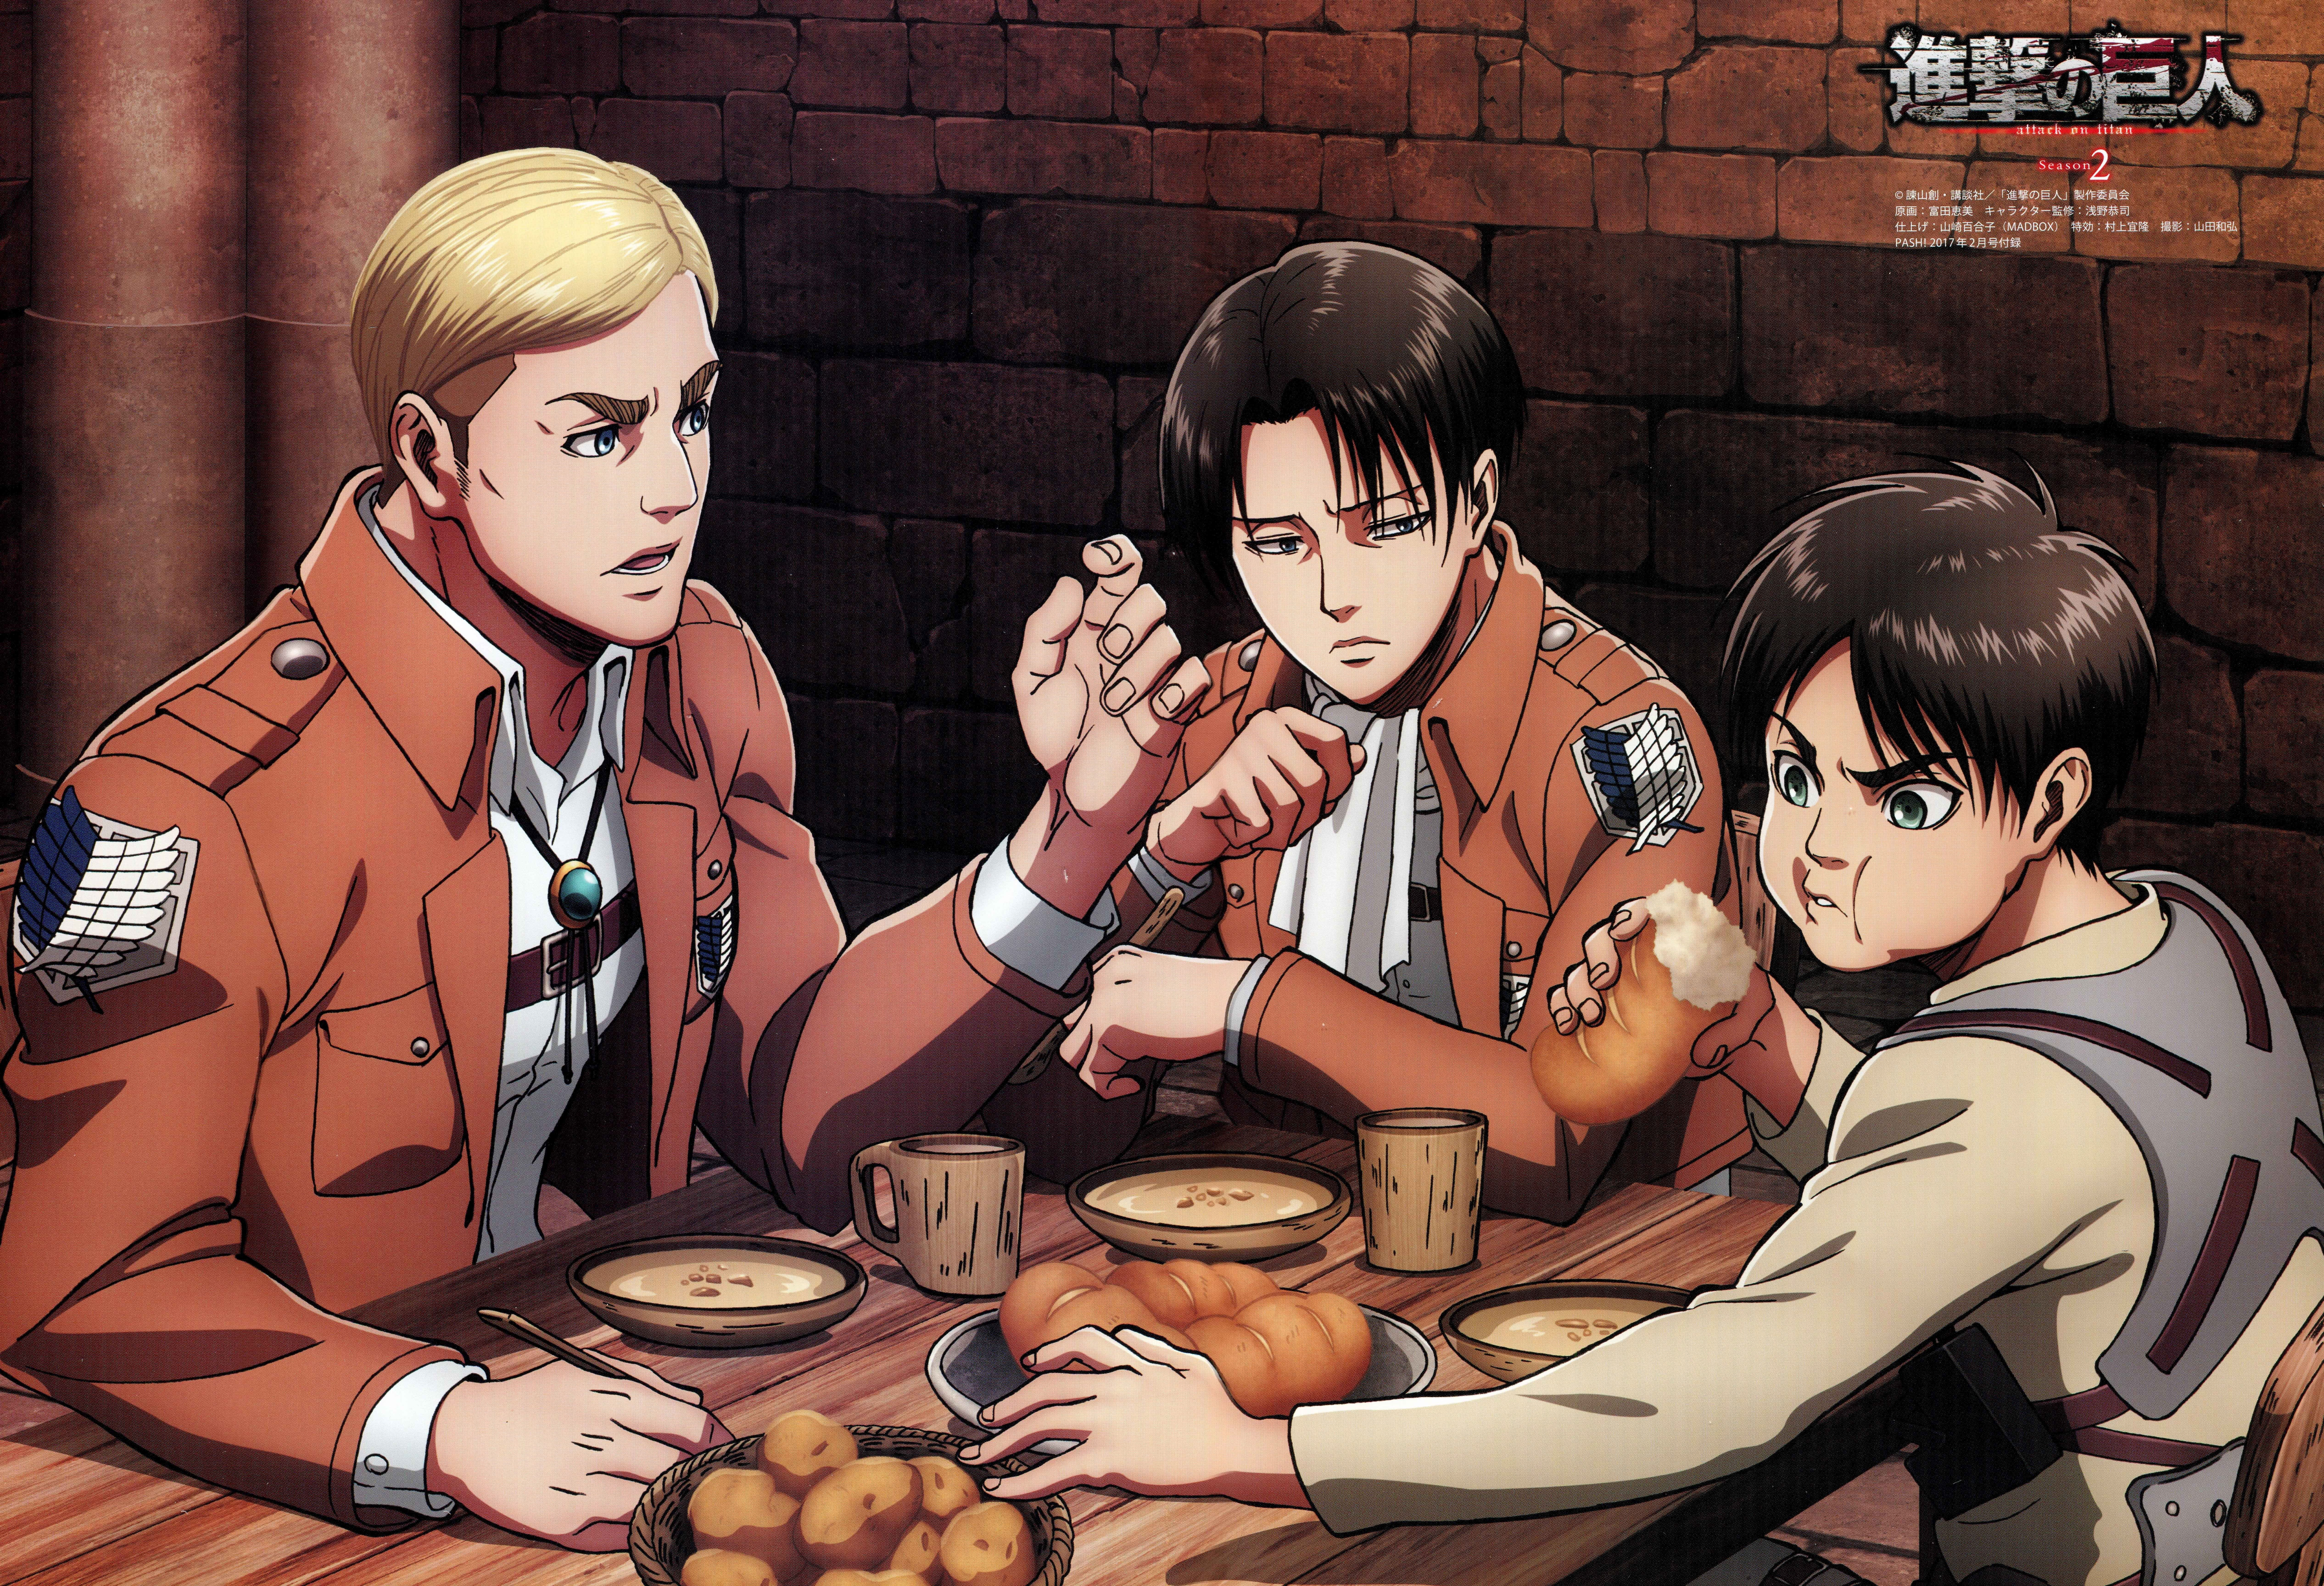 Attack On Titan 8k Wallpaper Hdwallpaper Desktop Attack On Titan Attack On Titan Anime Attack On Titan Season